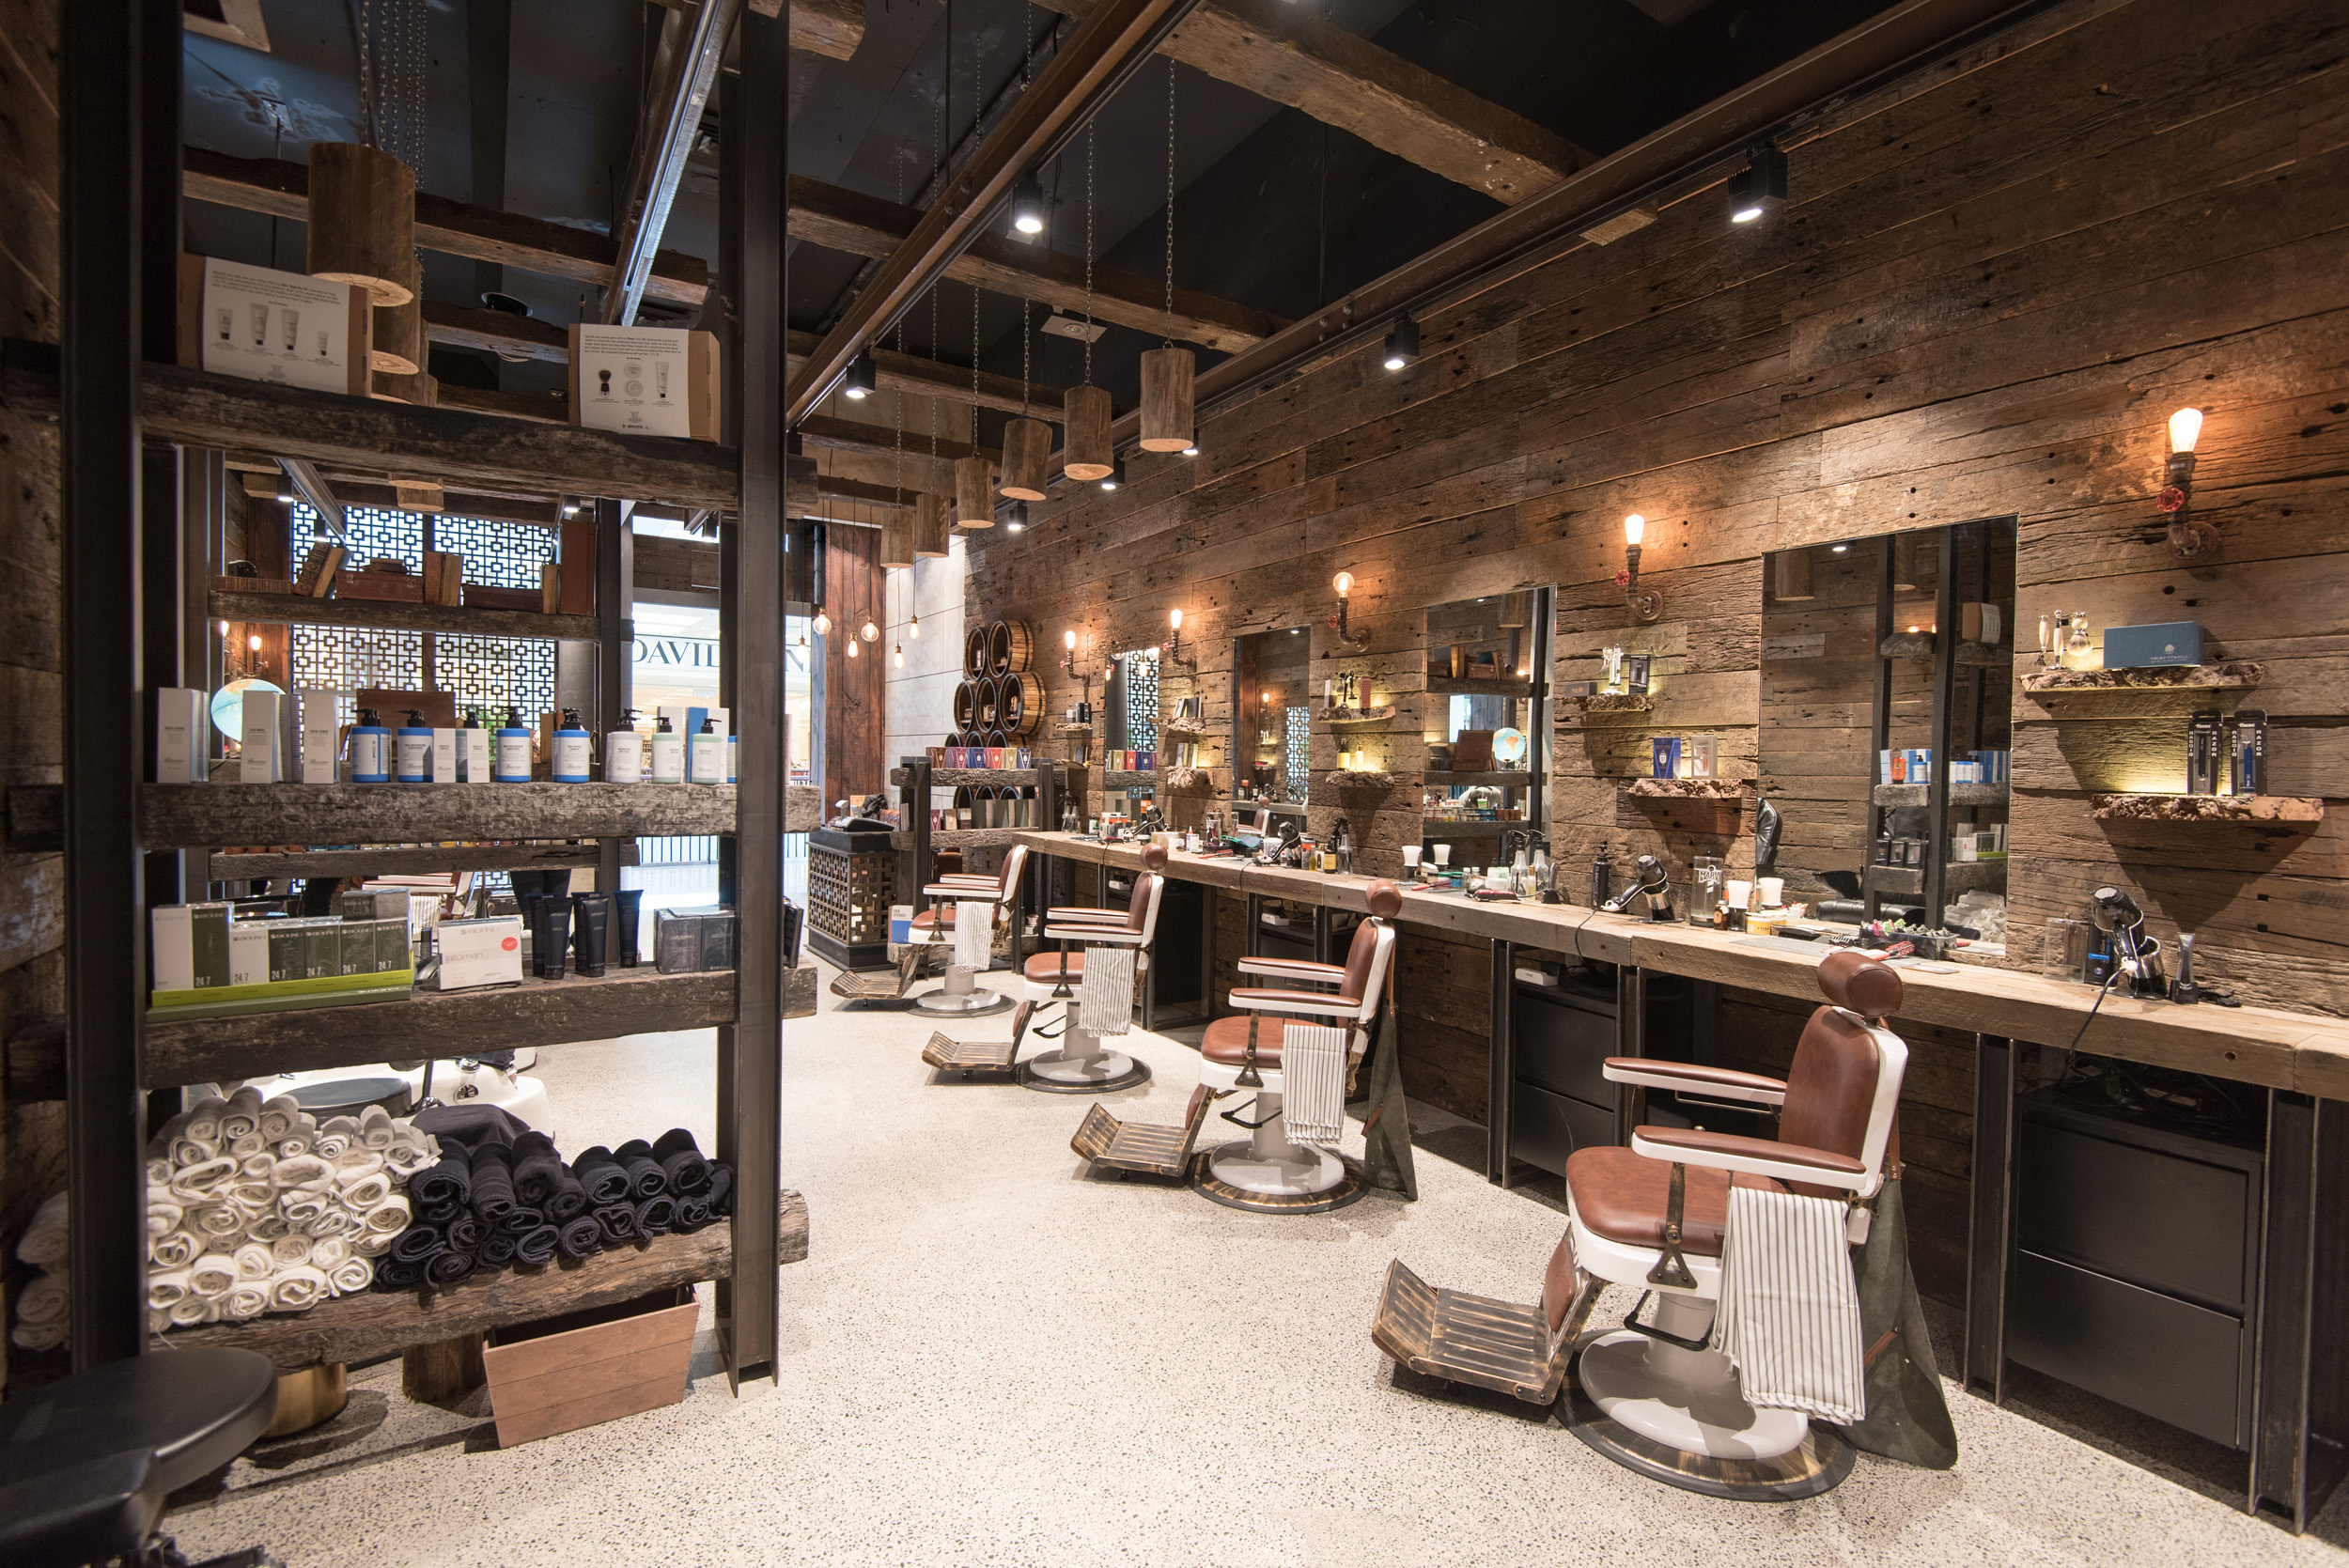 Man Cave Barber Toronto Review : The man cave barber shop best